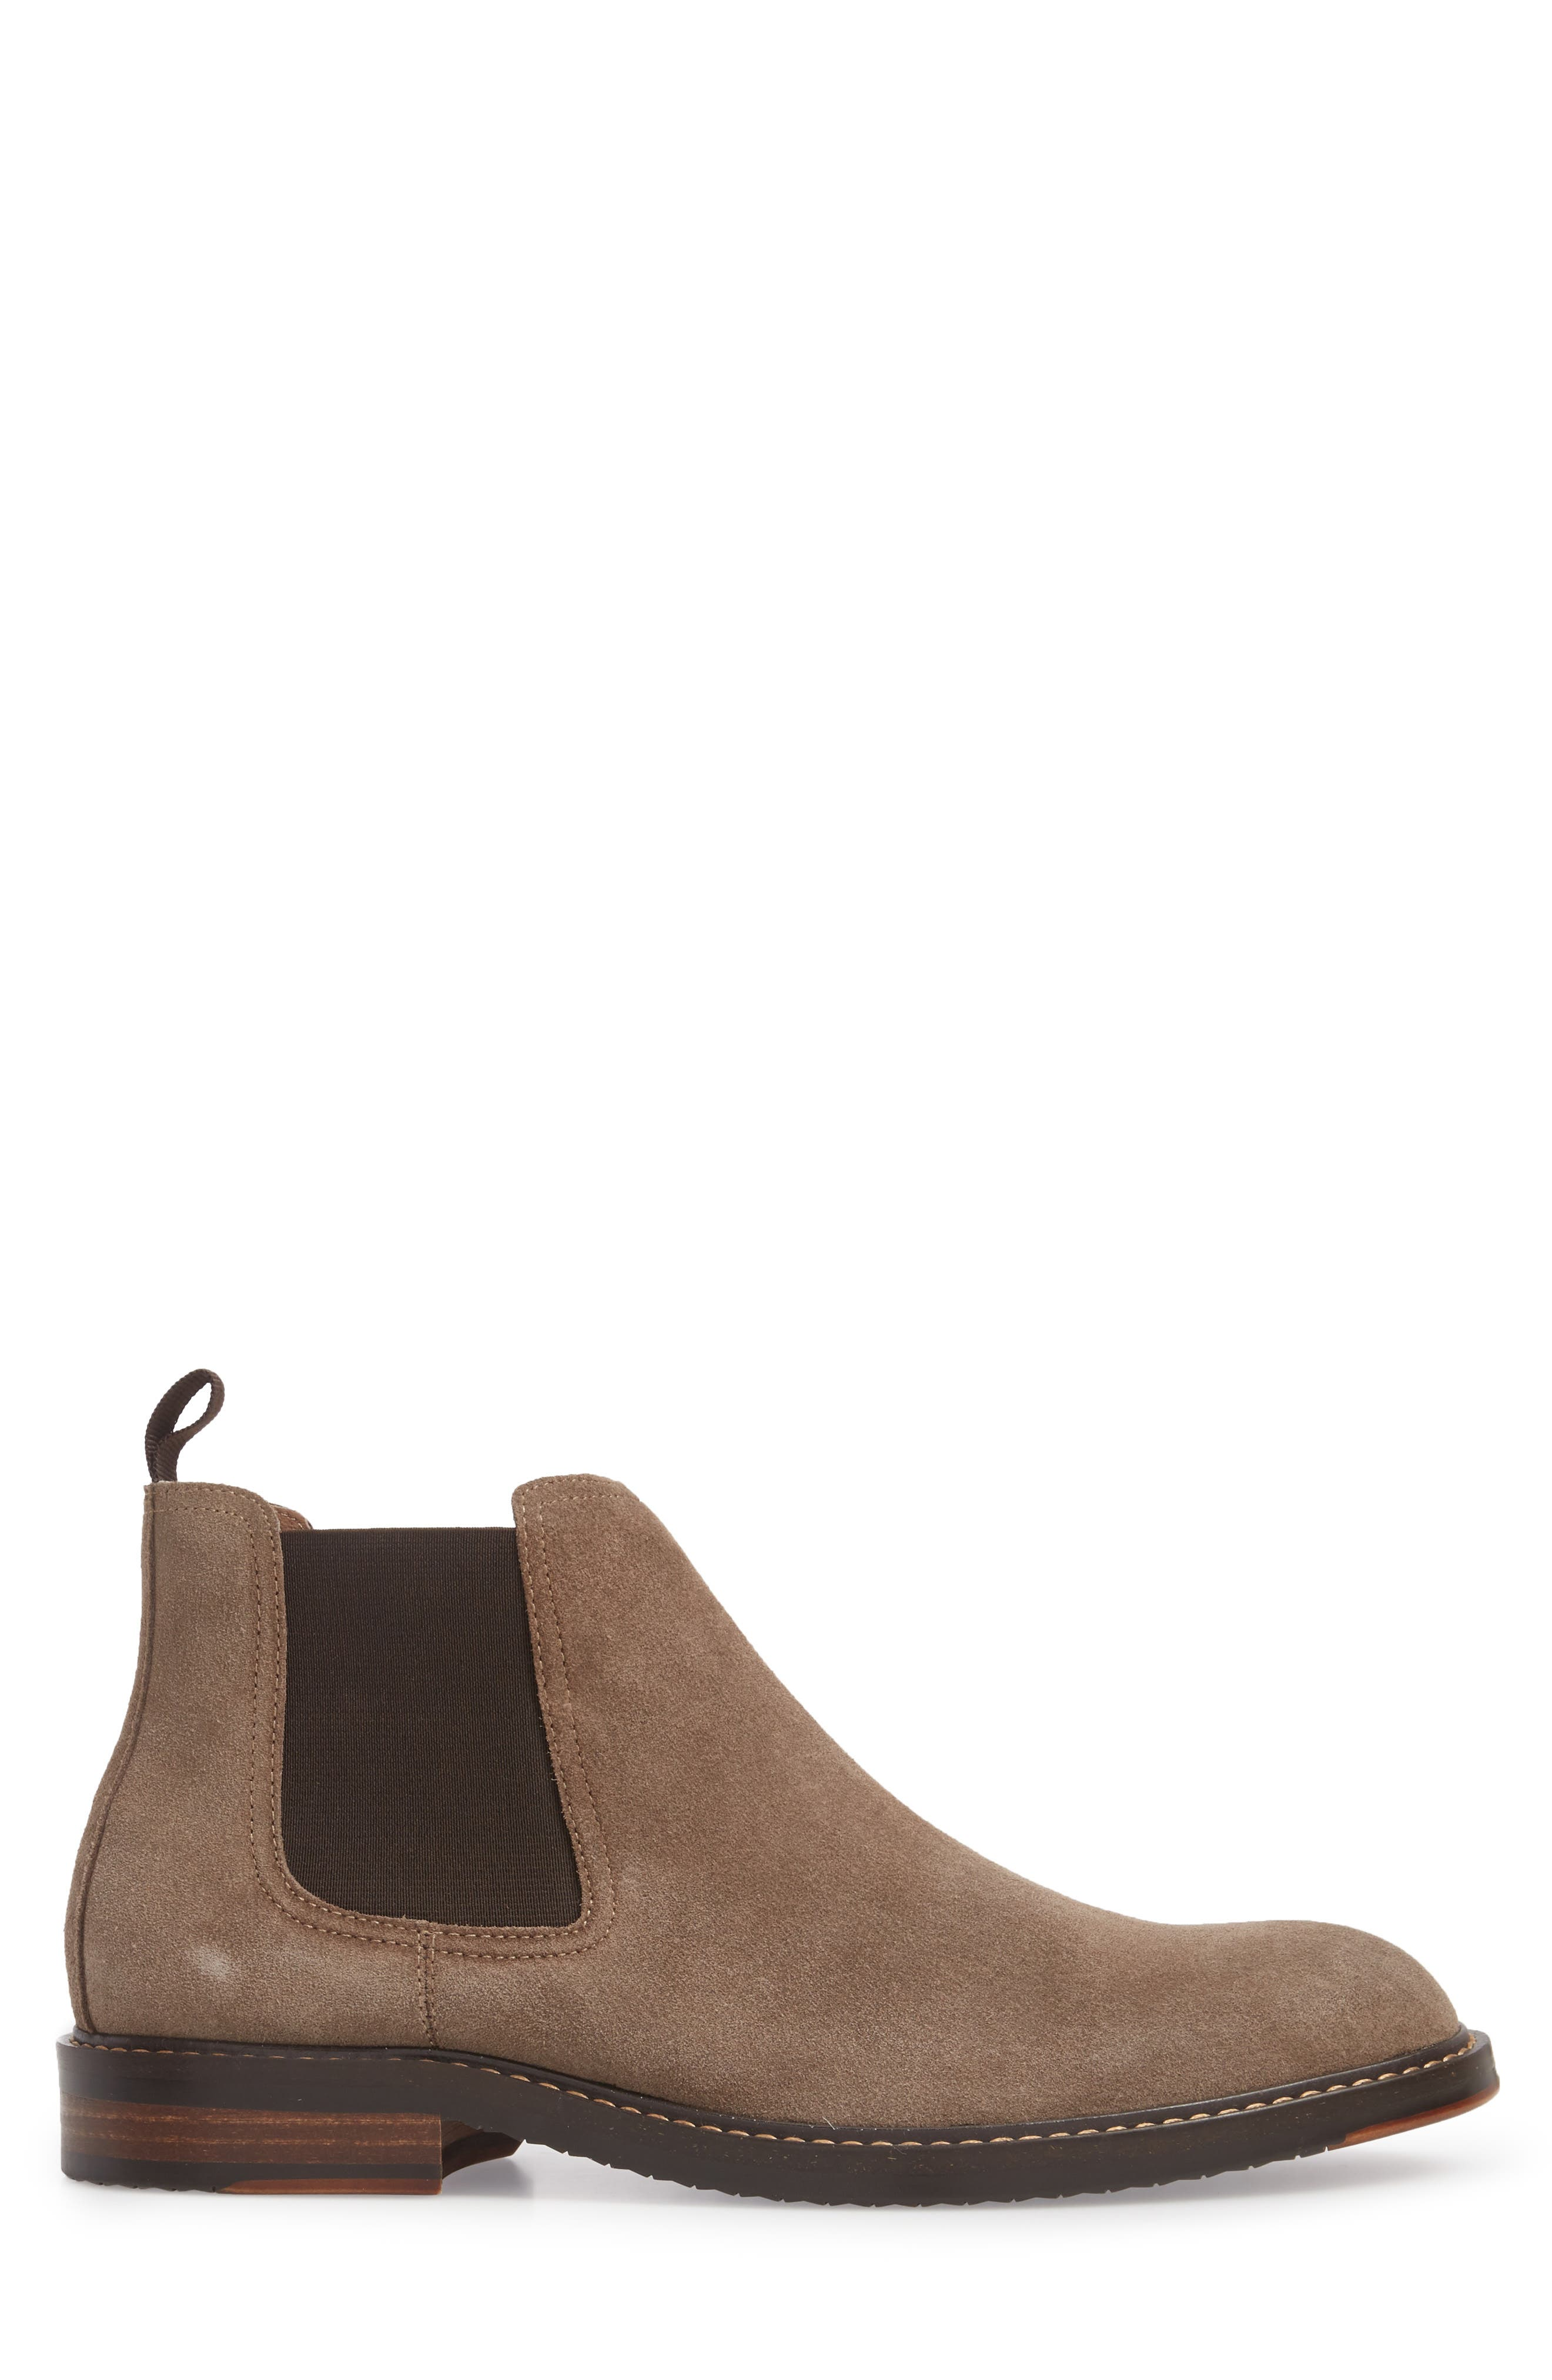 Brooks Chelsea Boot,                             Alternate thumbnail 3, color,                             TAUPE SUEDE